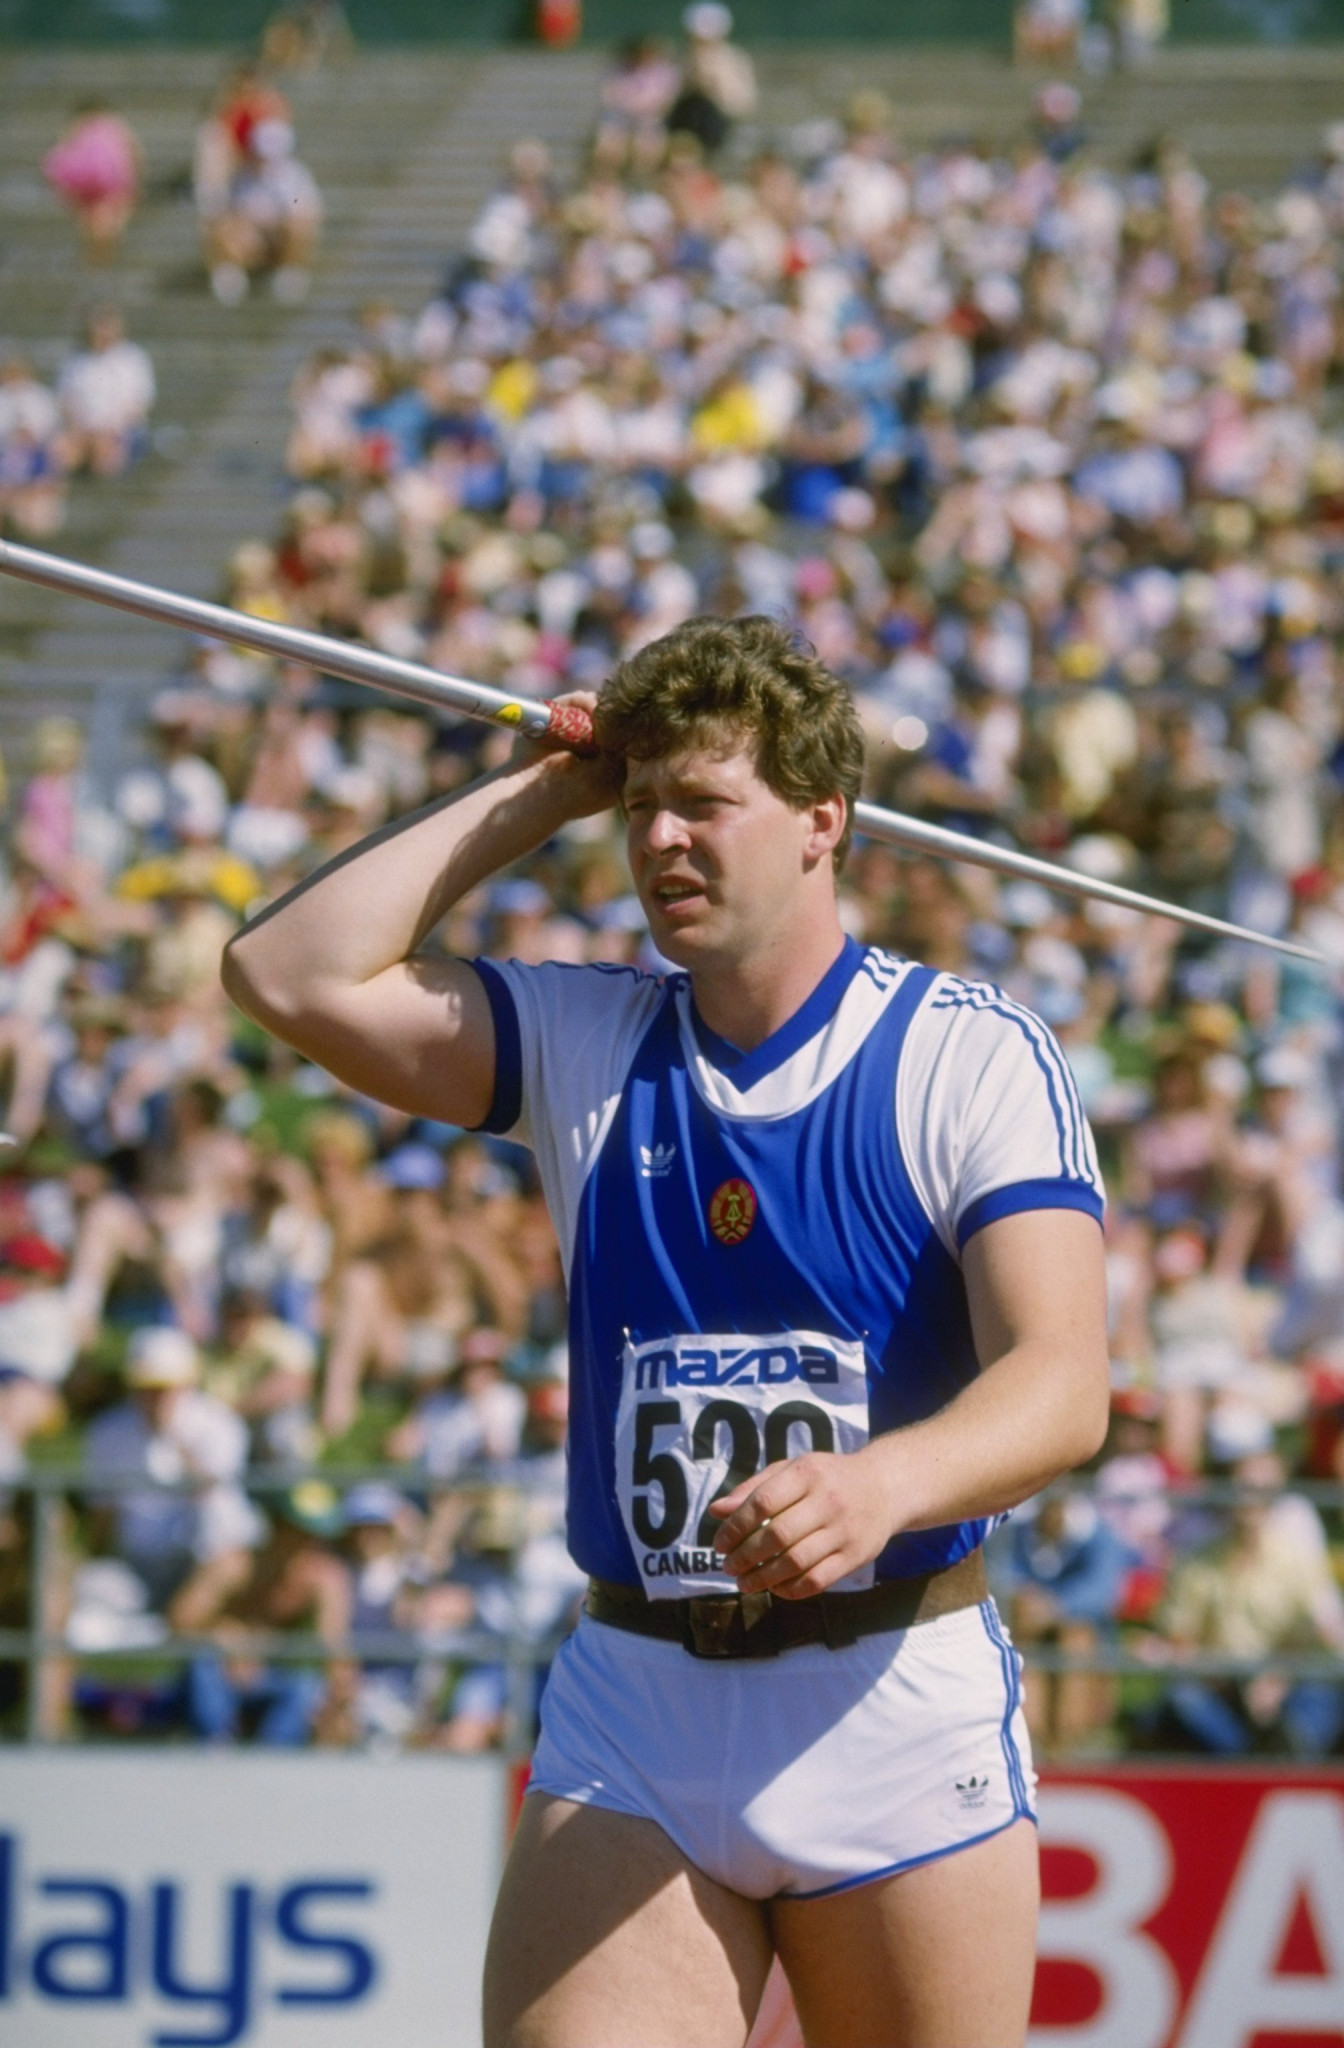 The 1984 achievement of East Germany's Uwe Hohn in throwing the javelin over 100 metres for the first time did not instigate the re-balancing of the spear to lessen distances - but it certainly accelerated it ©Getty Images